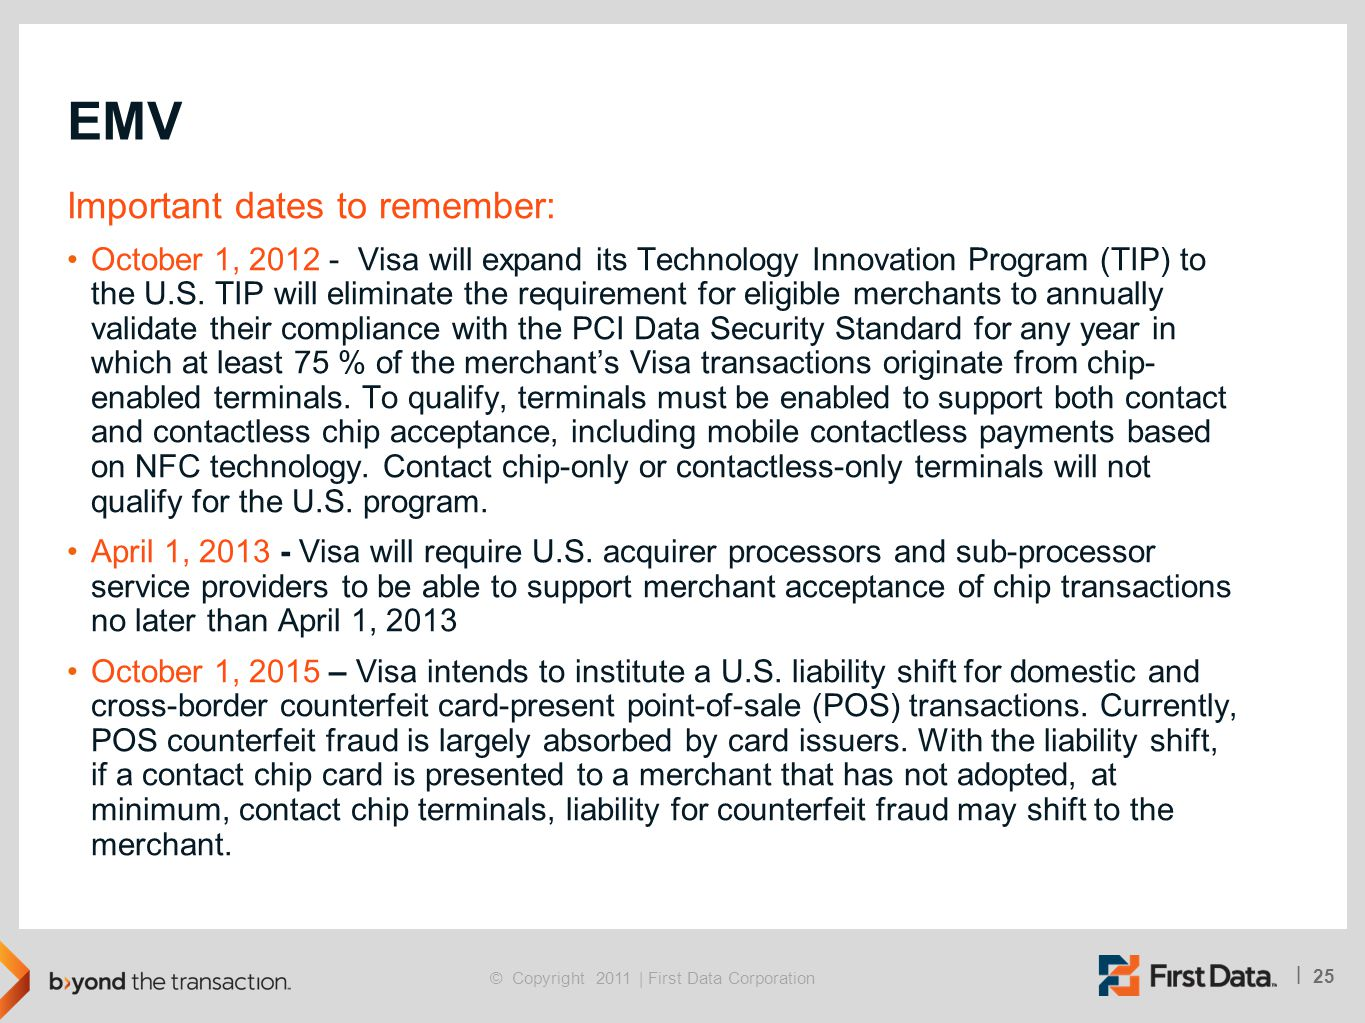 25 | © Copyright 2011 | First Data Corporation EMV Important dates to remember: October 1, 2012 - Visa will expand its Technology Innovation Program (